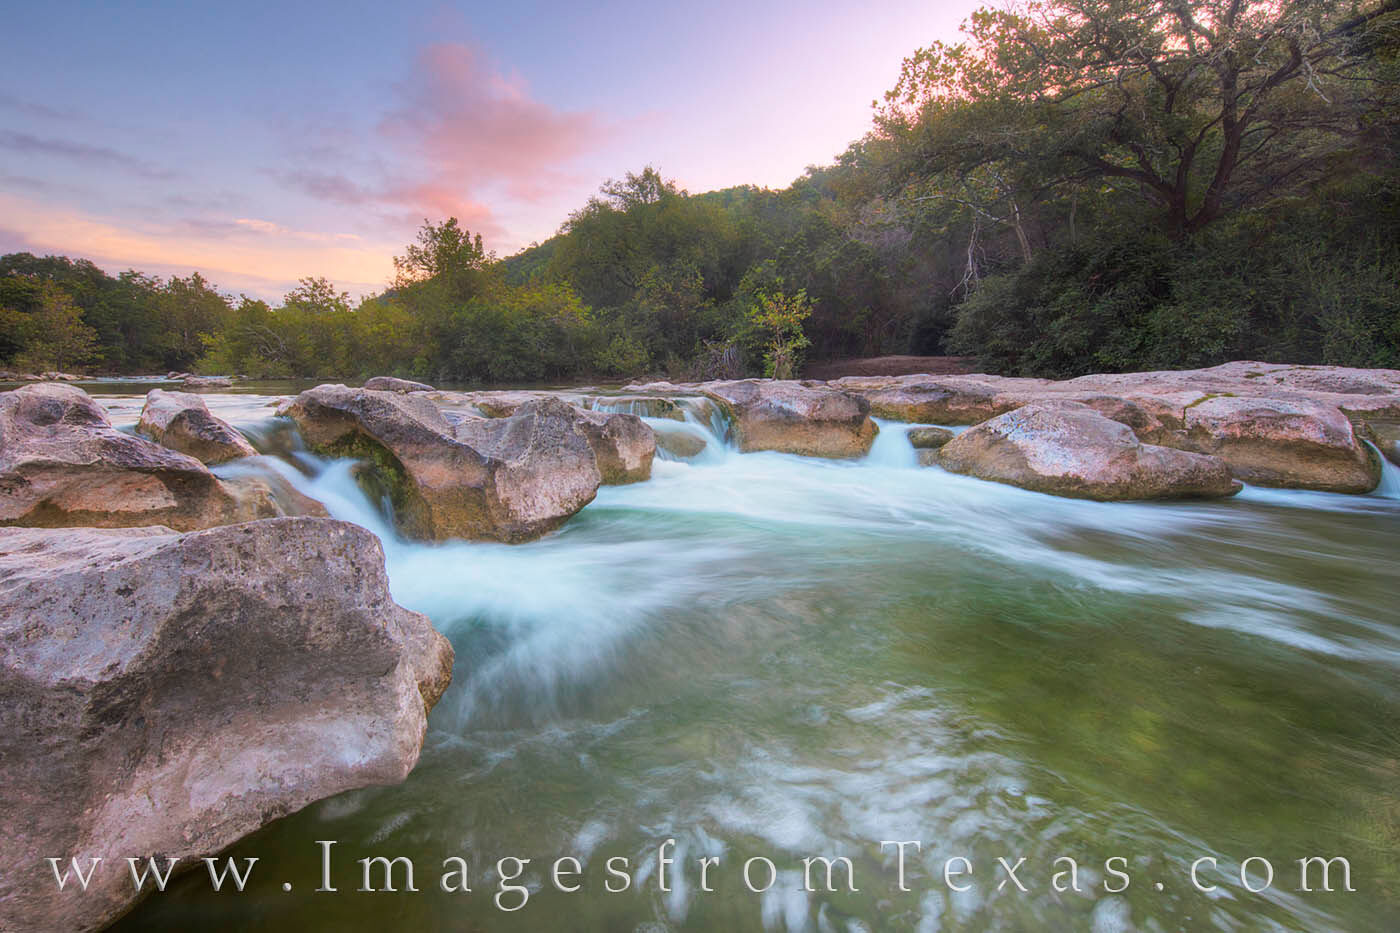 austin greenbelt, sculpture falls, barton creek greenbelt, barton creek, barton creek photos, austin texas, austin greenbelt pictures, photo